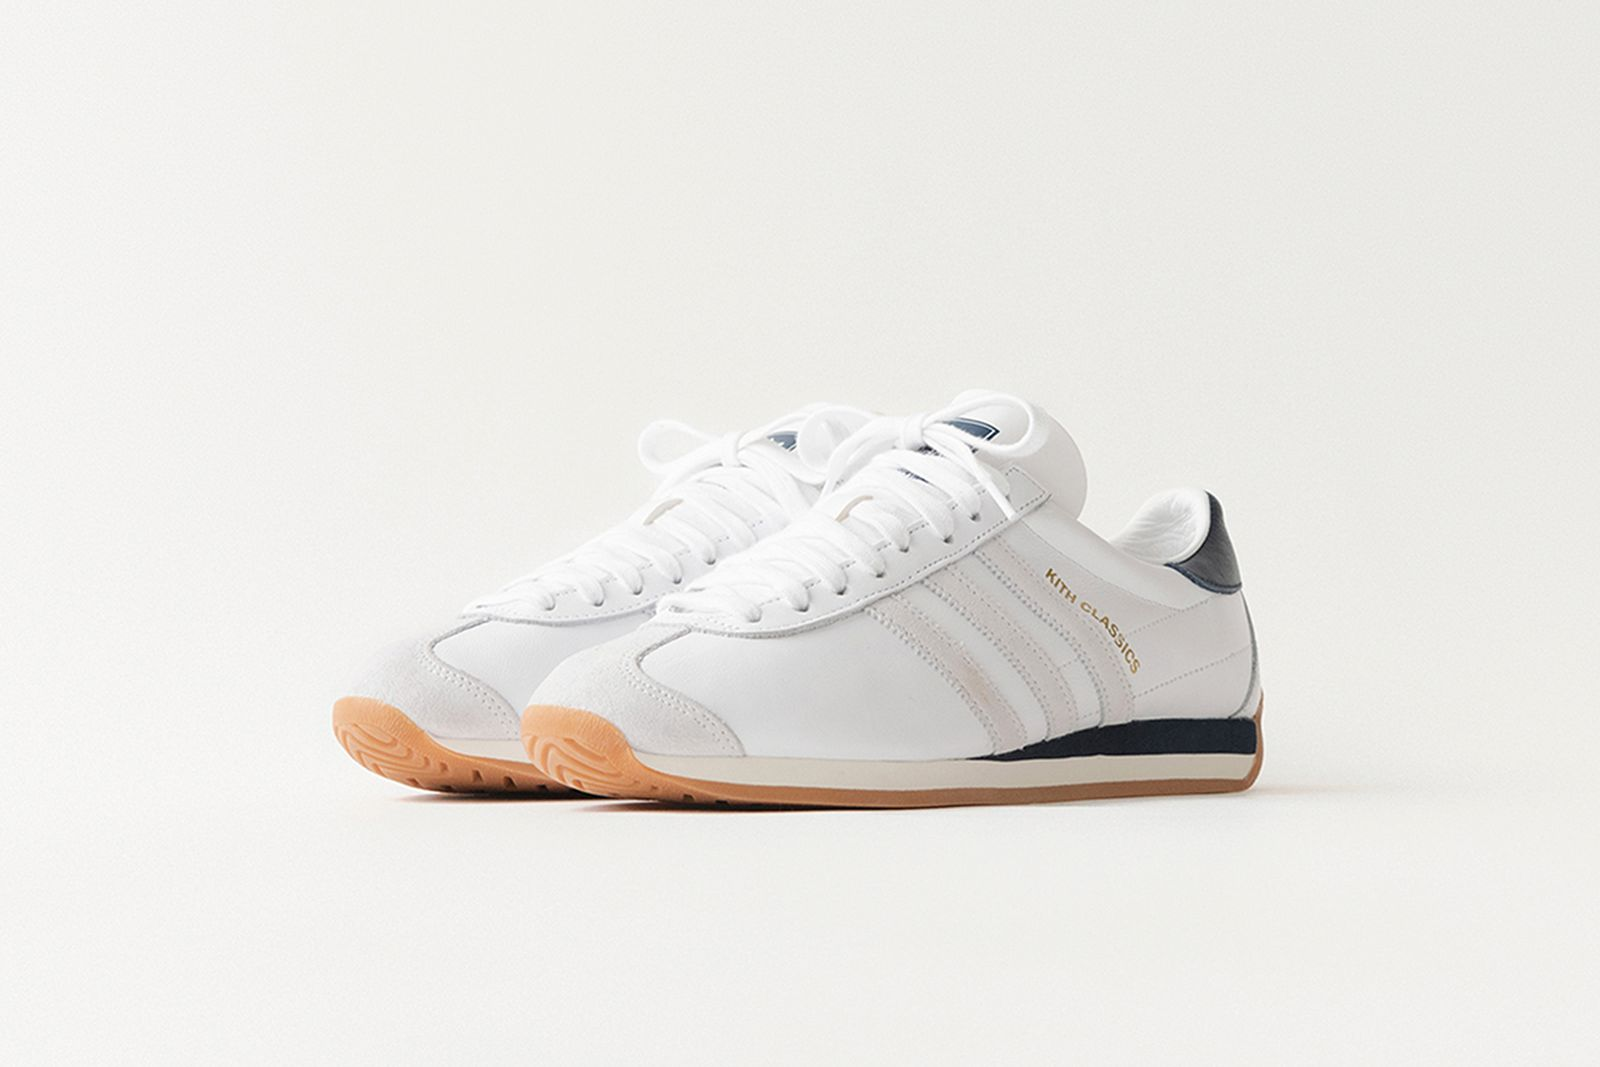 kith-adidas-summer-2021-release-info-18